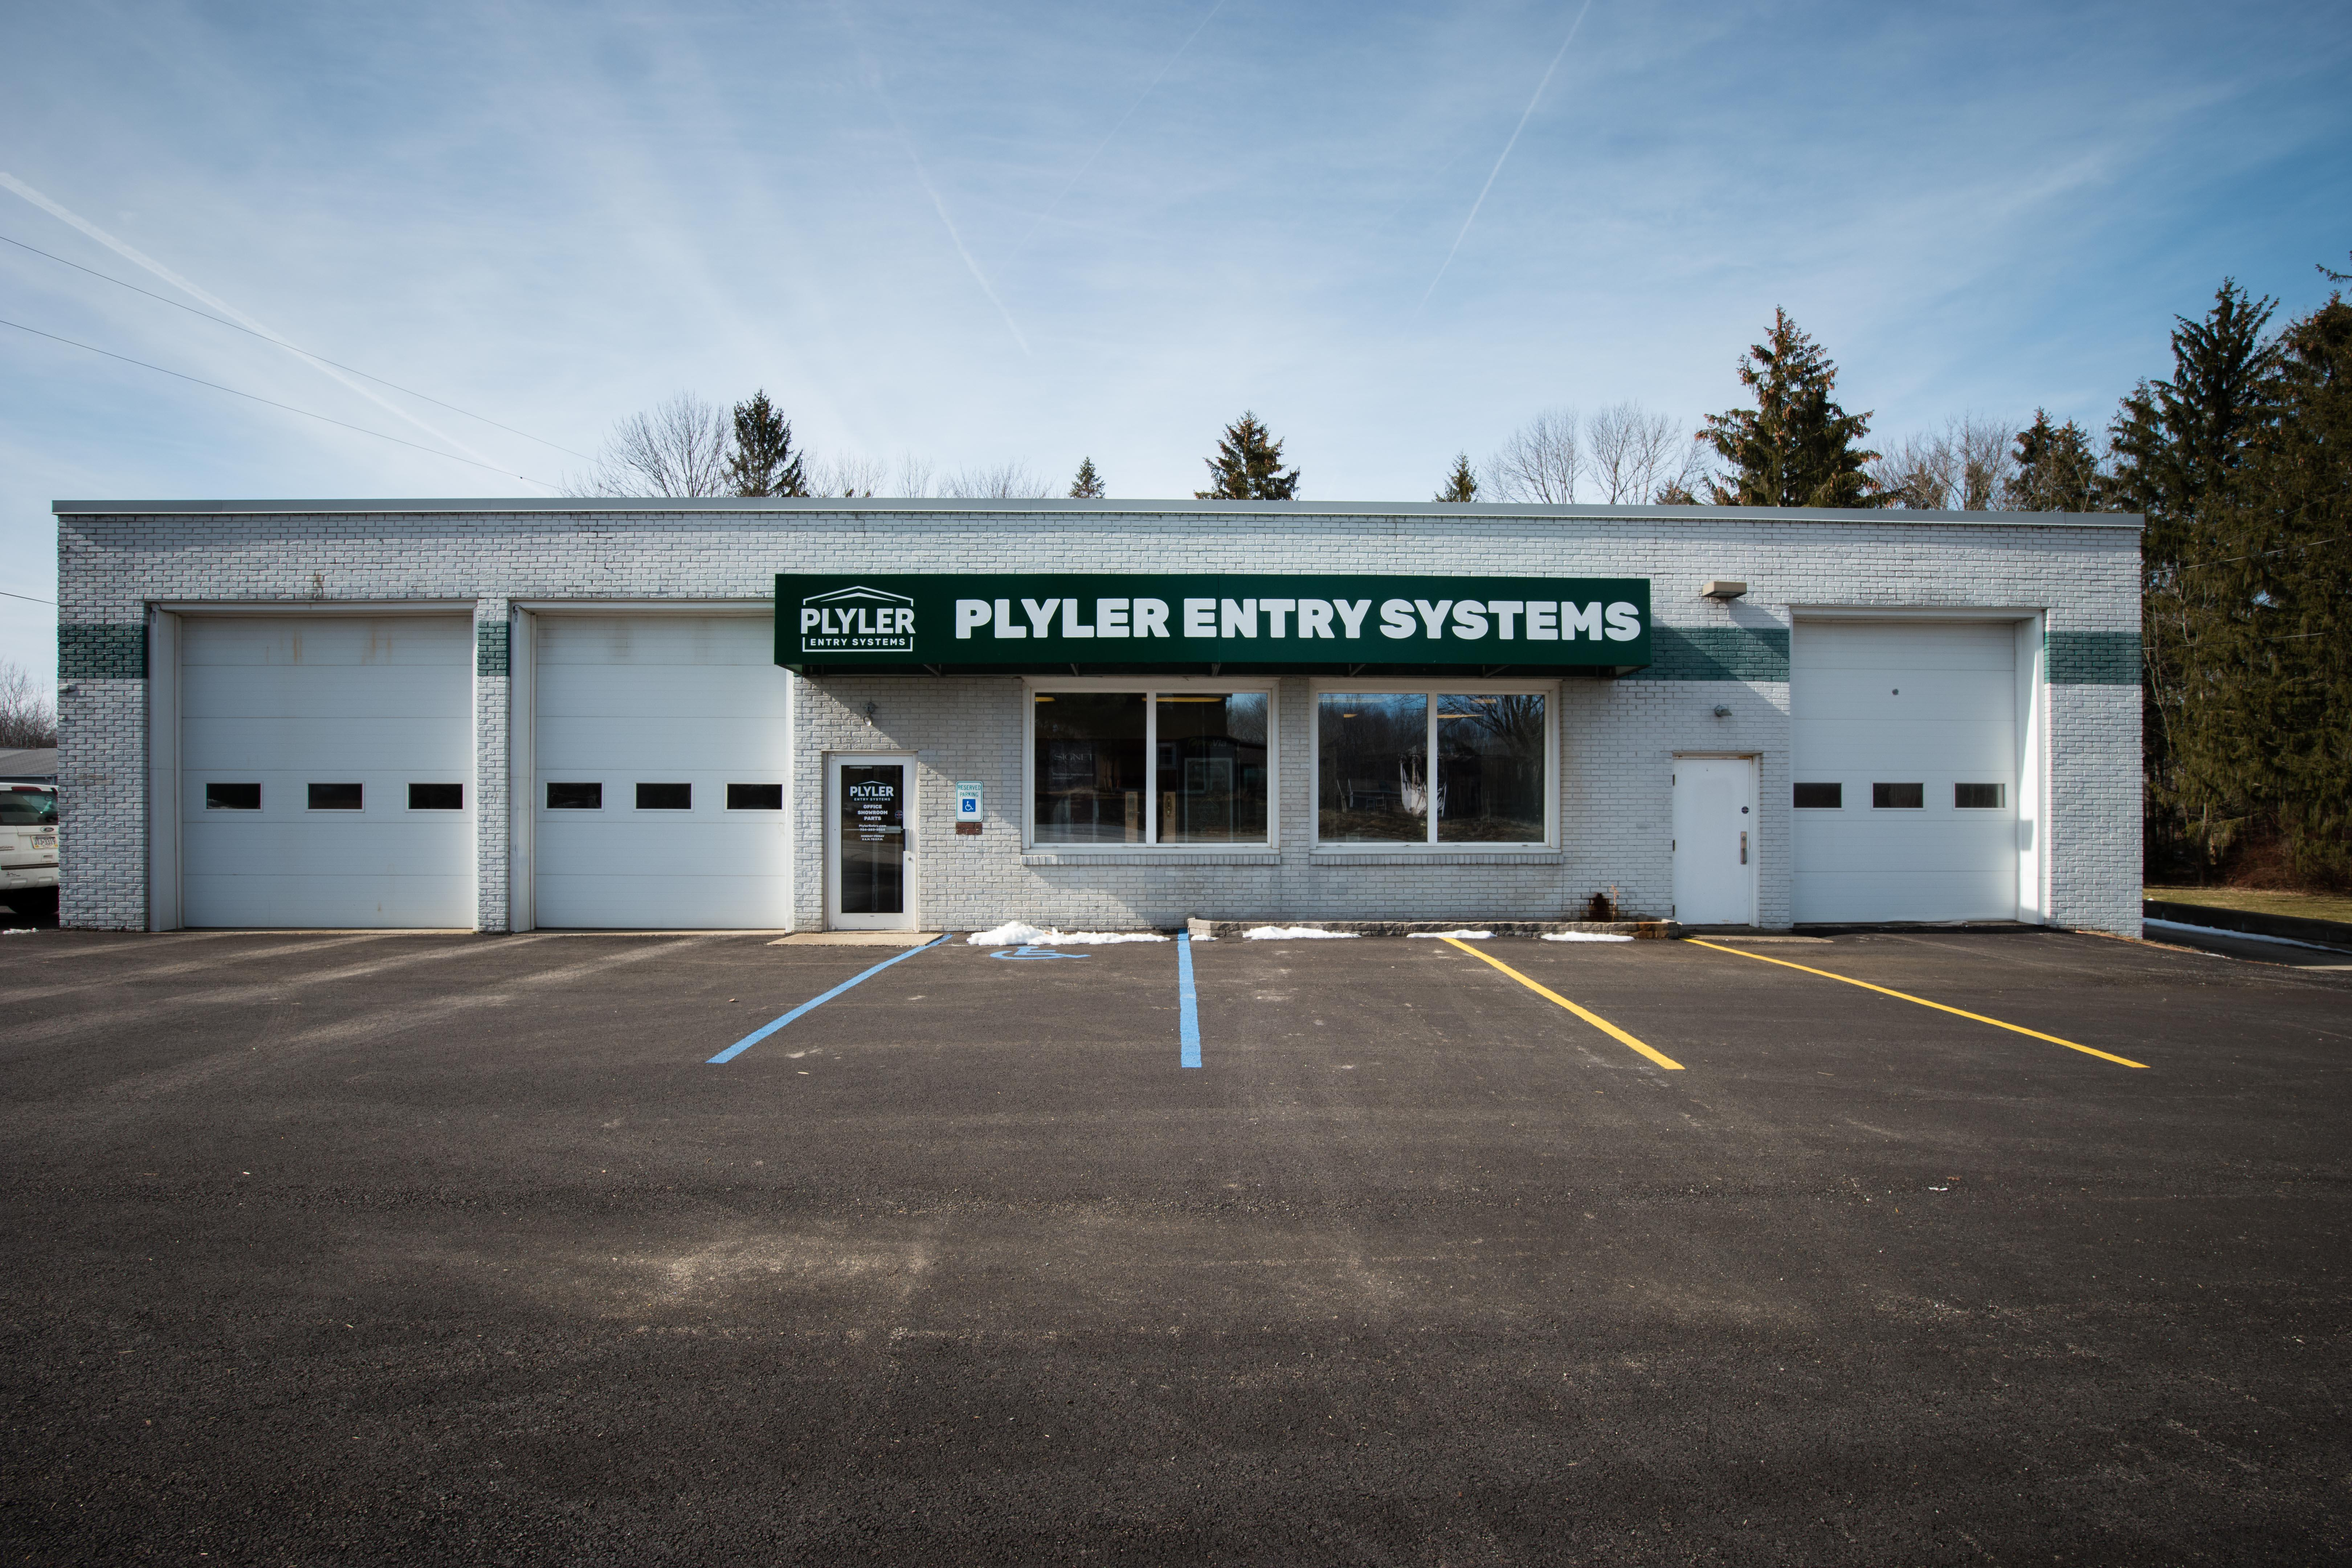 Plyler Entry Systems image 3